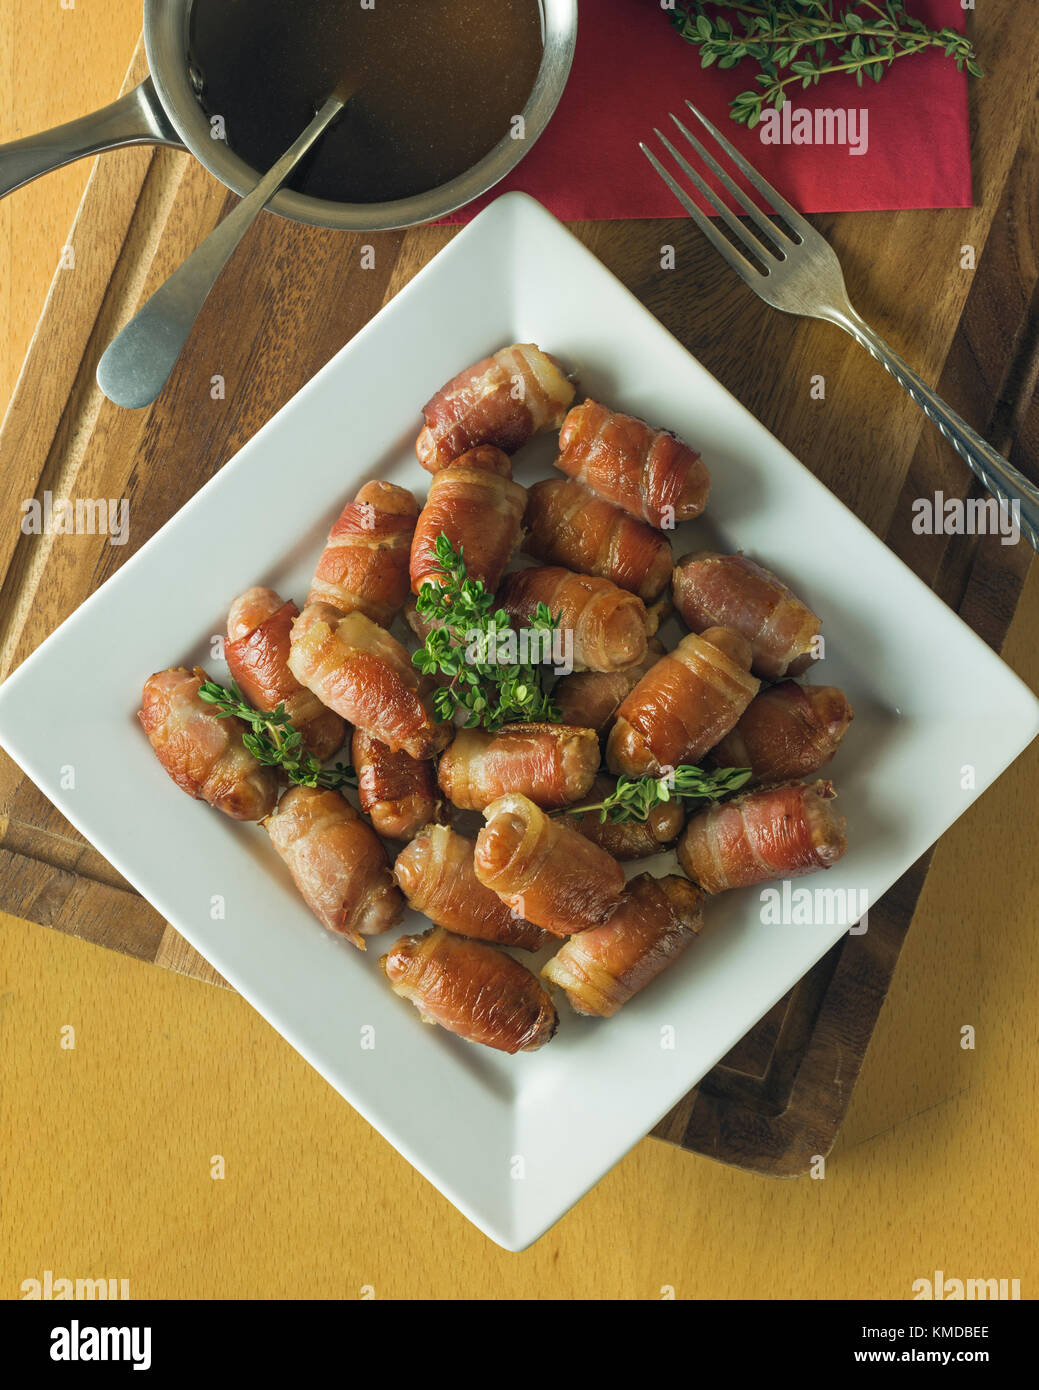 Pigs in blankets.Sausage and bacon rolls. UK Food - Stock Image